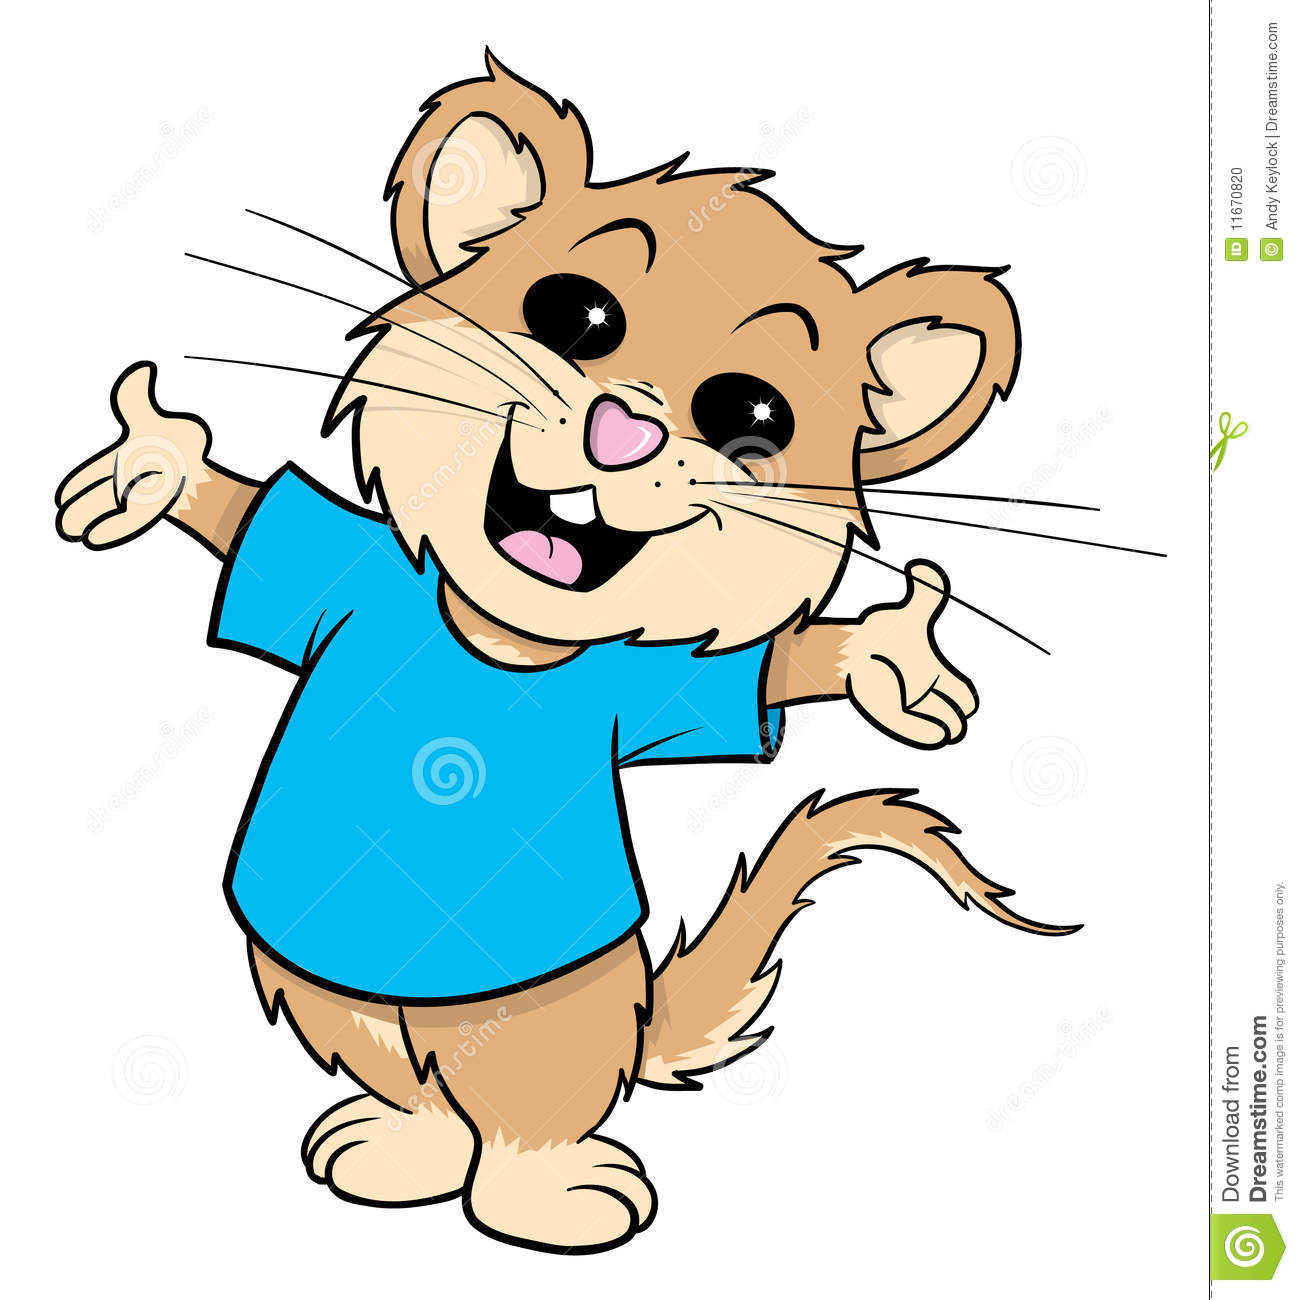 Mouse Cartoon Illustration Stock Photo - Image: 11670820